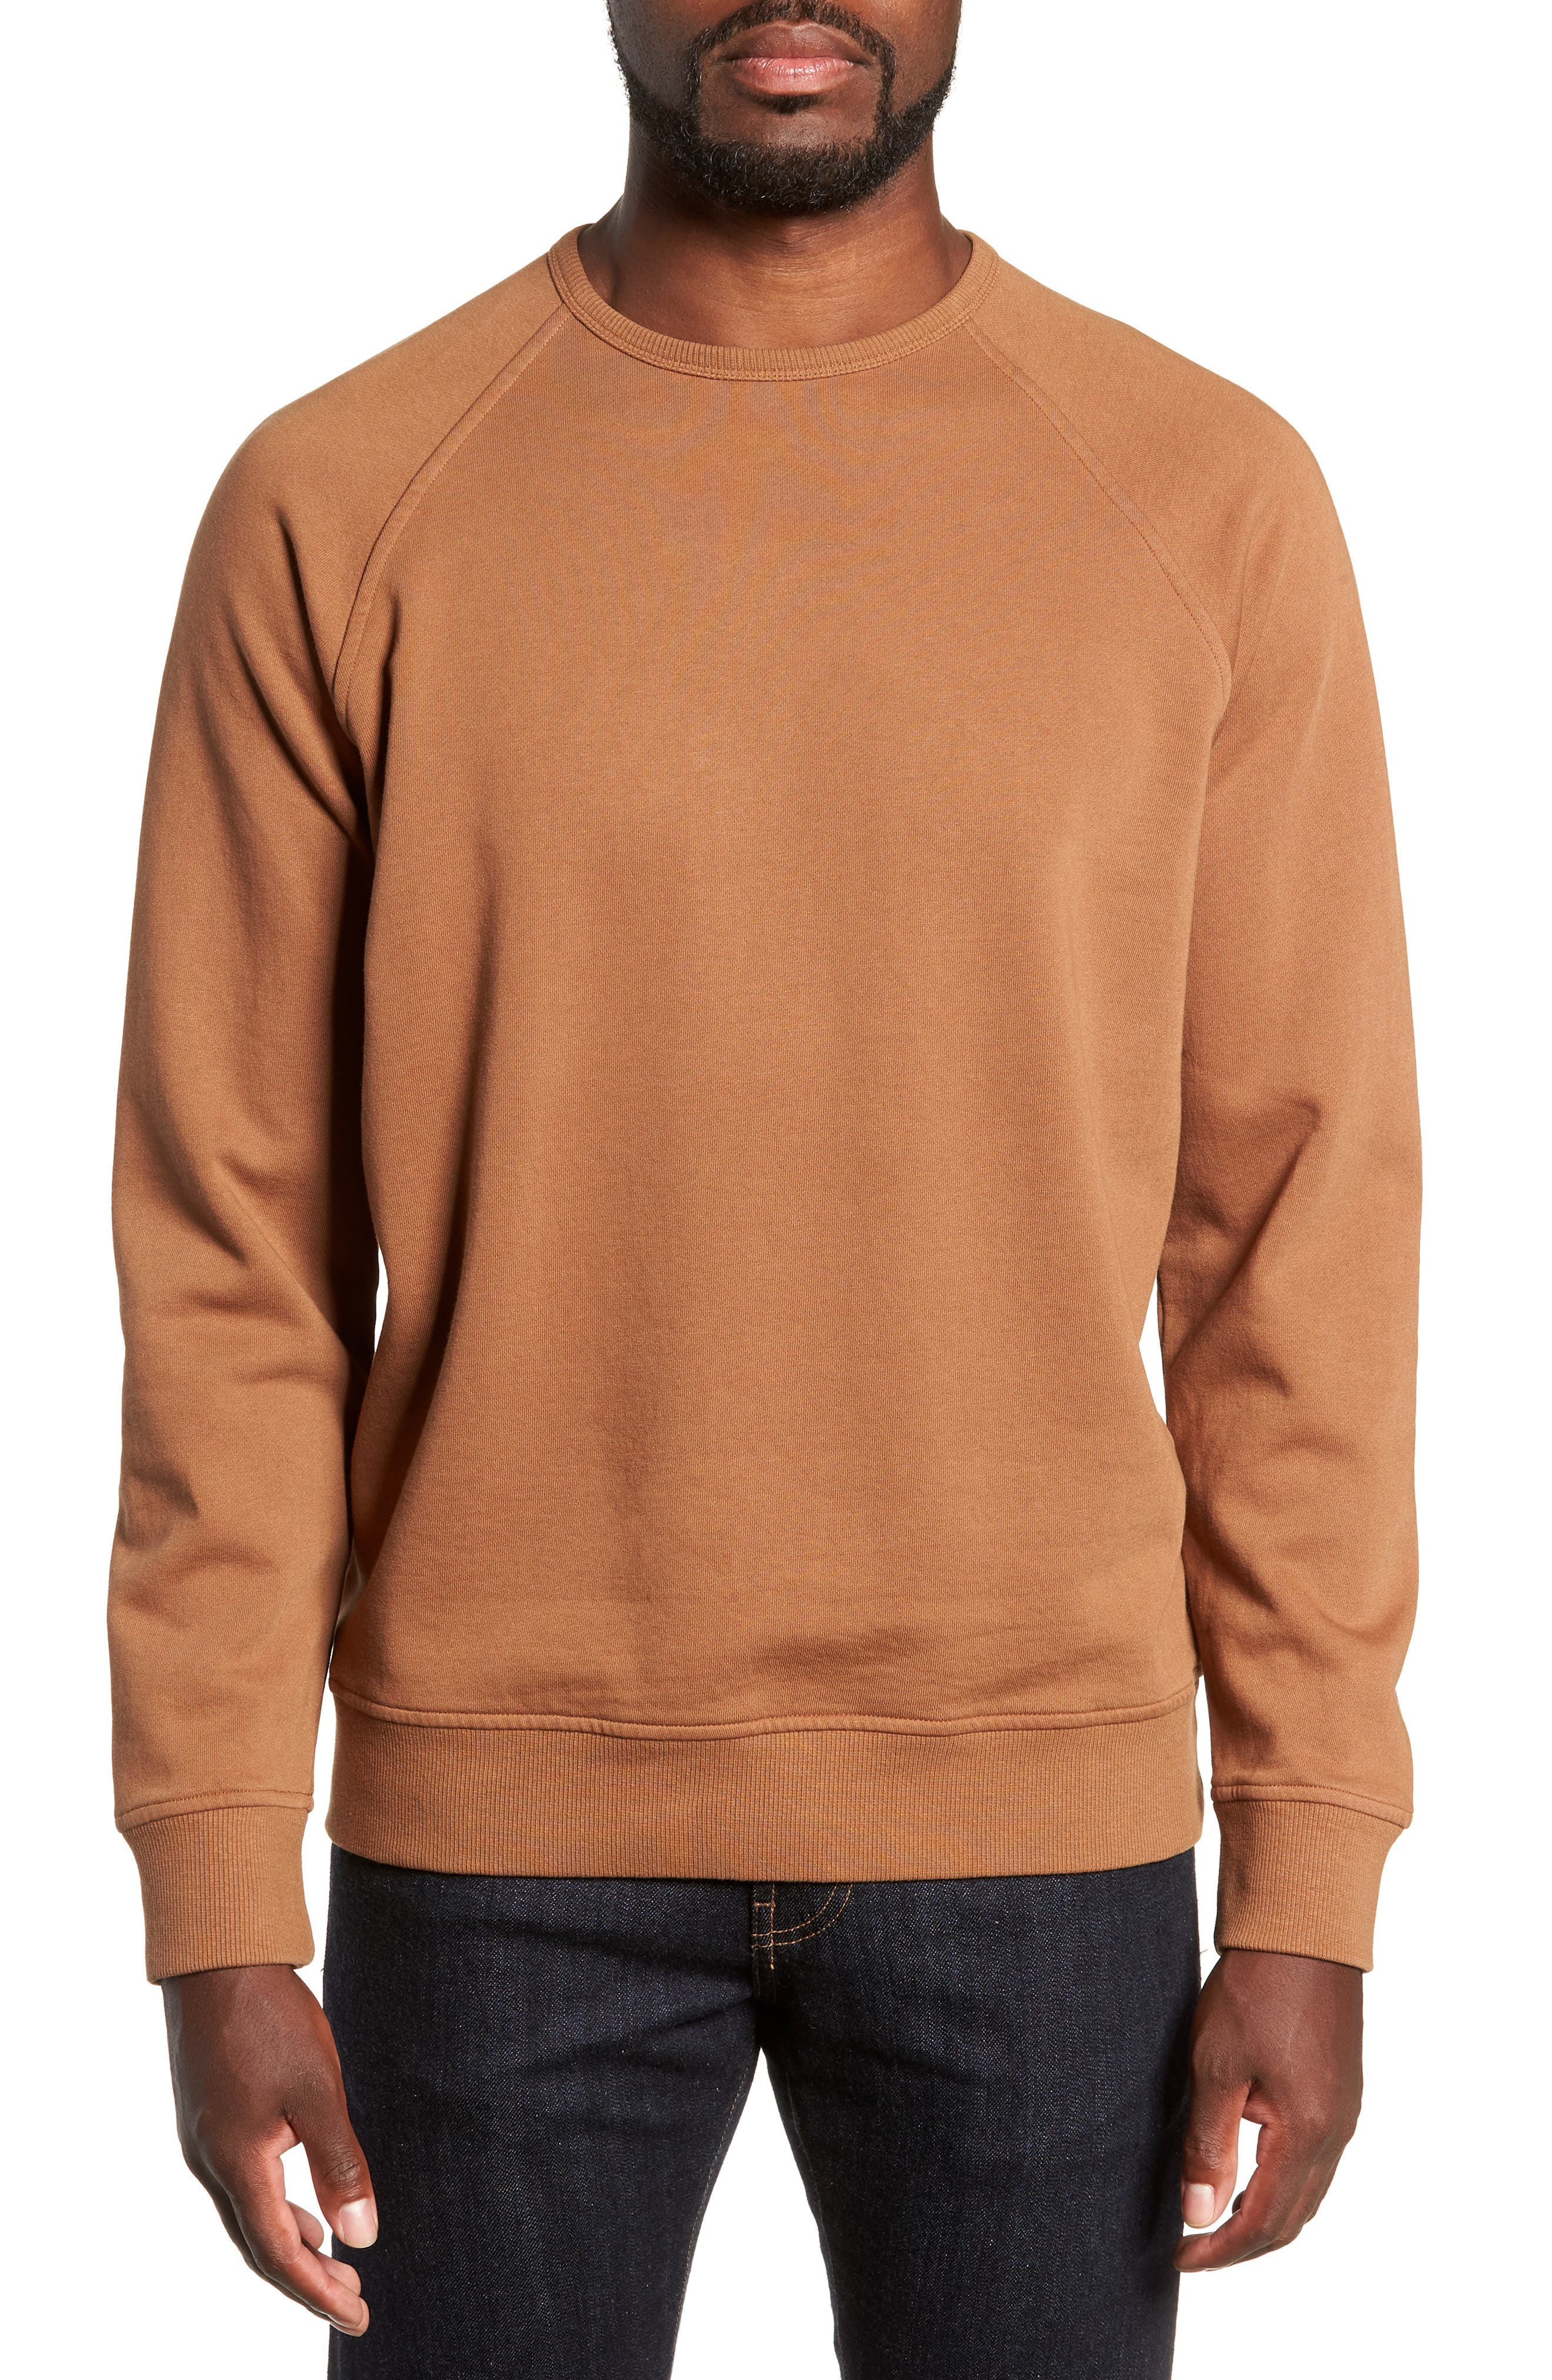 Schrank Regular Fit Cotton Sweatshirt,                             Main thumbnail 1, color,                             200